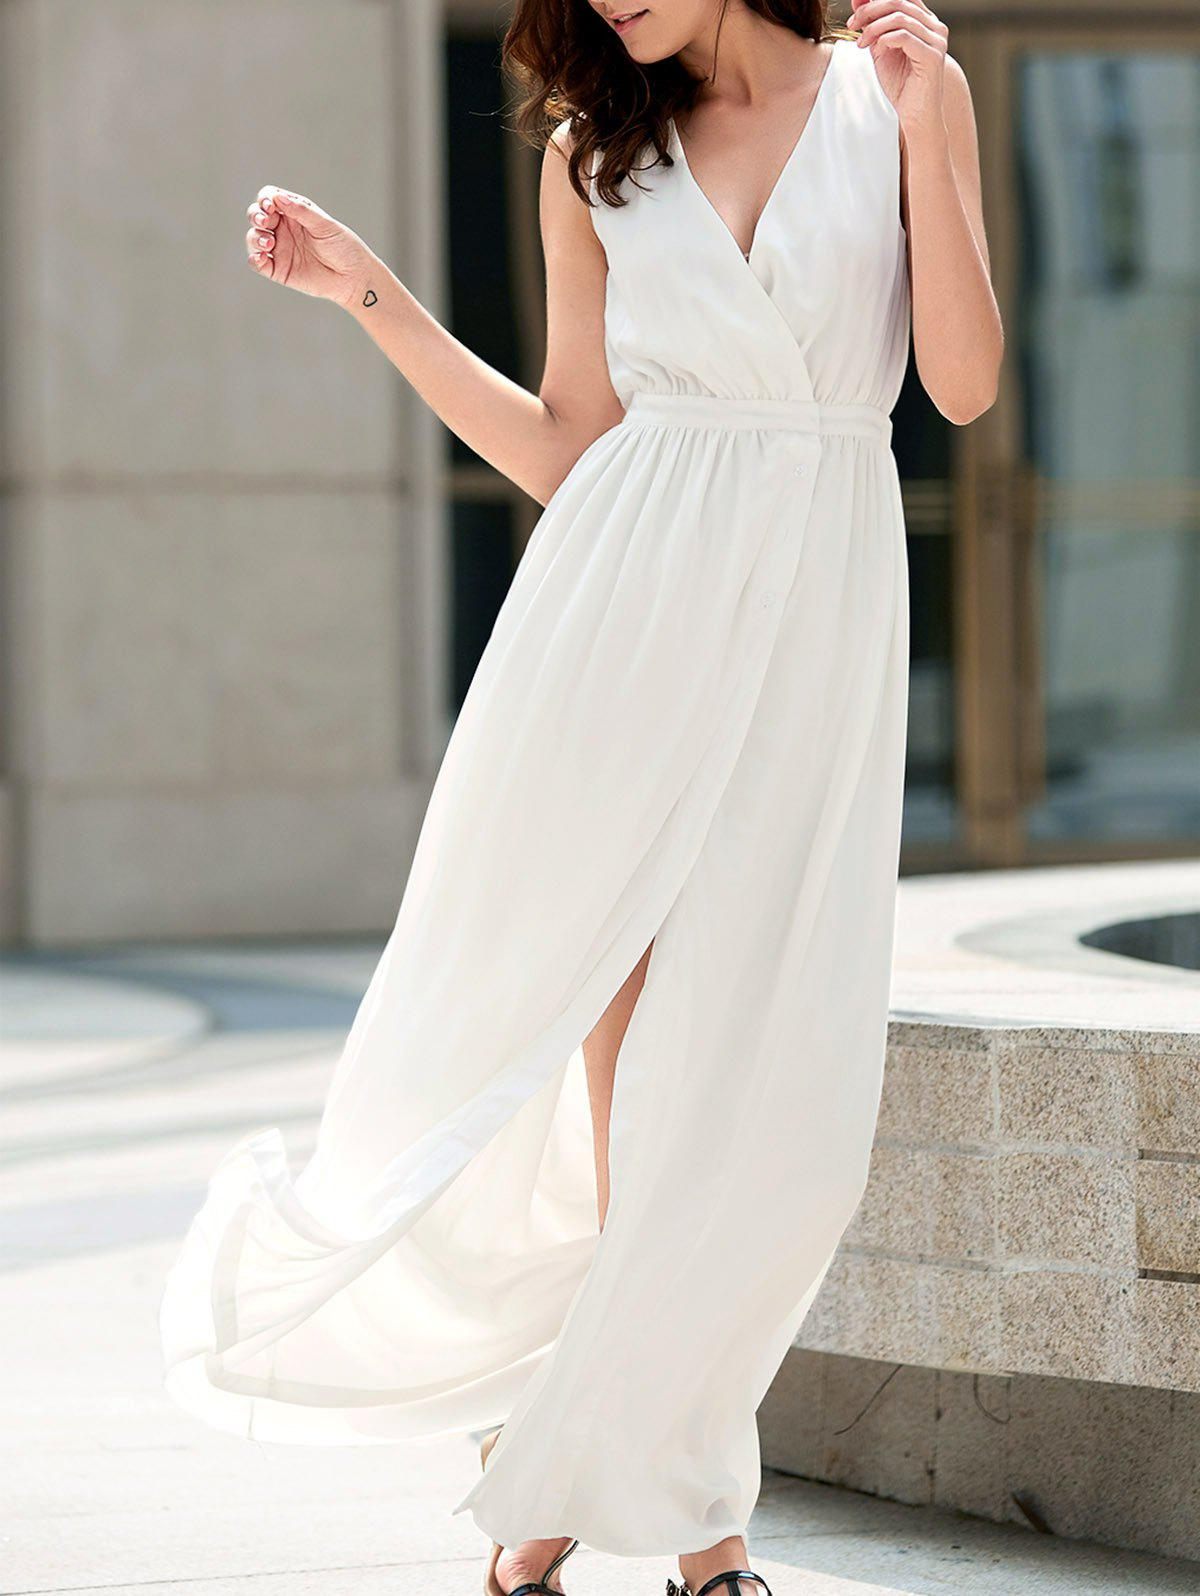 Alluring Plunging Neckline High Slit Sleeveless Maxi Dress For Women